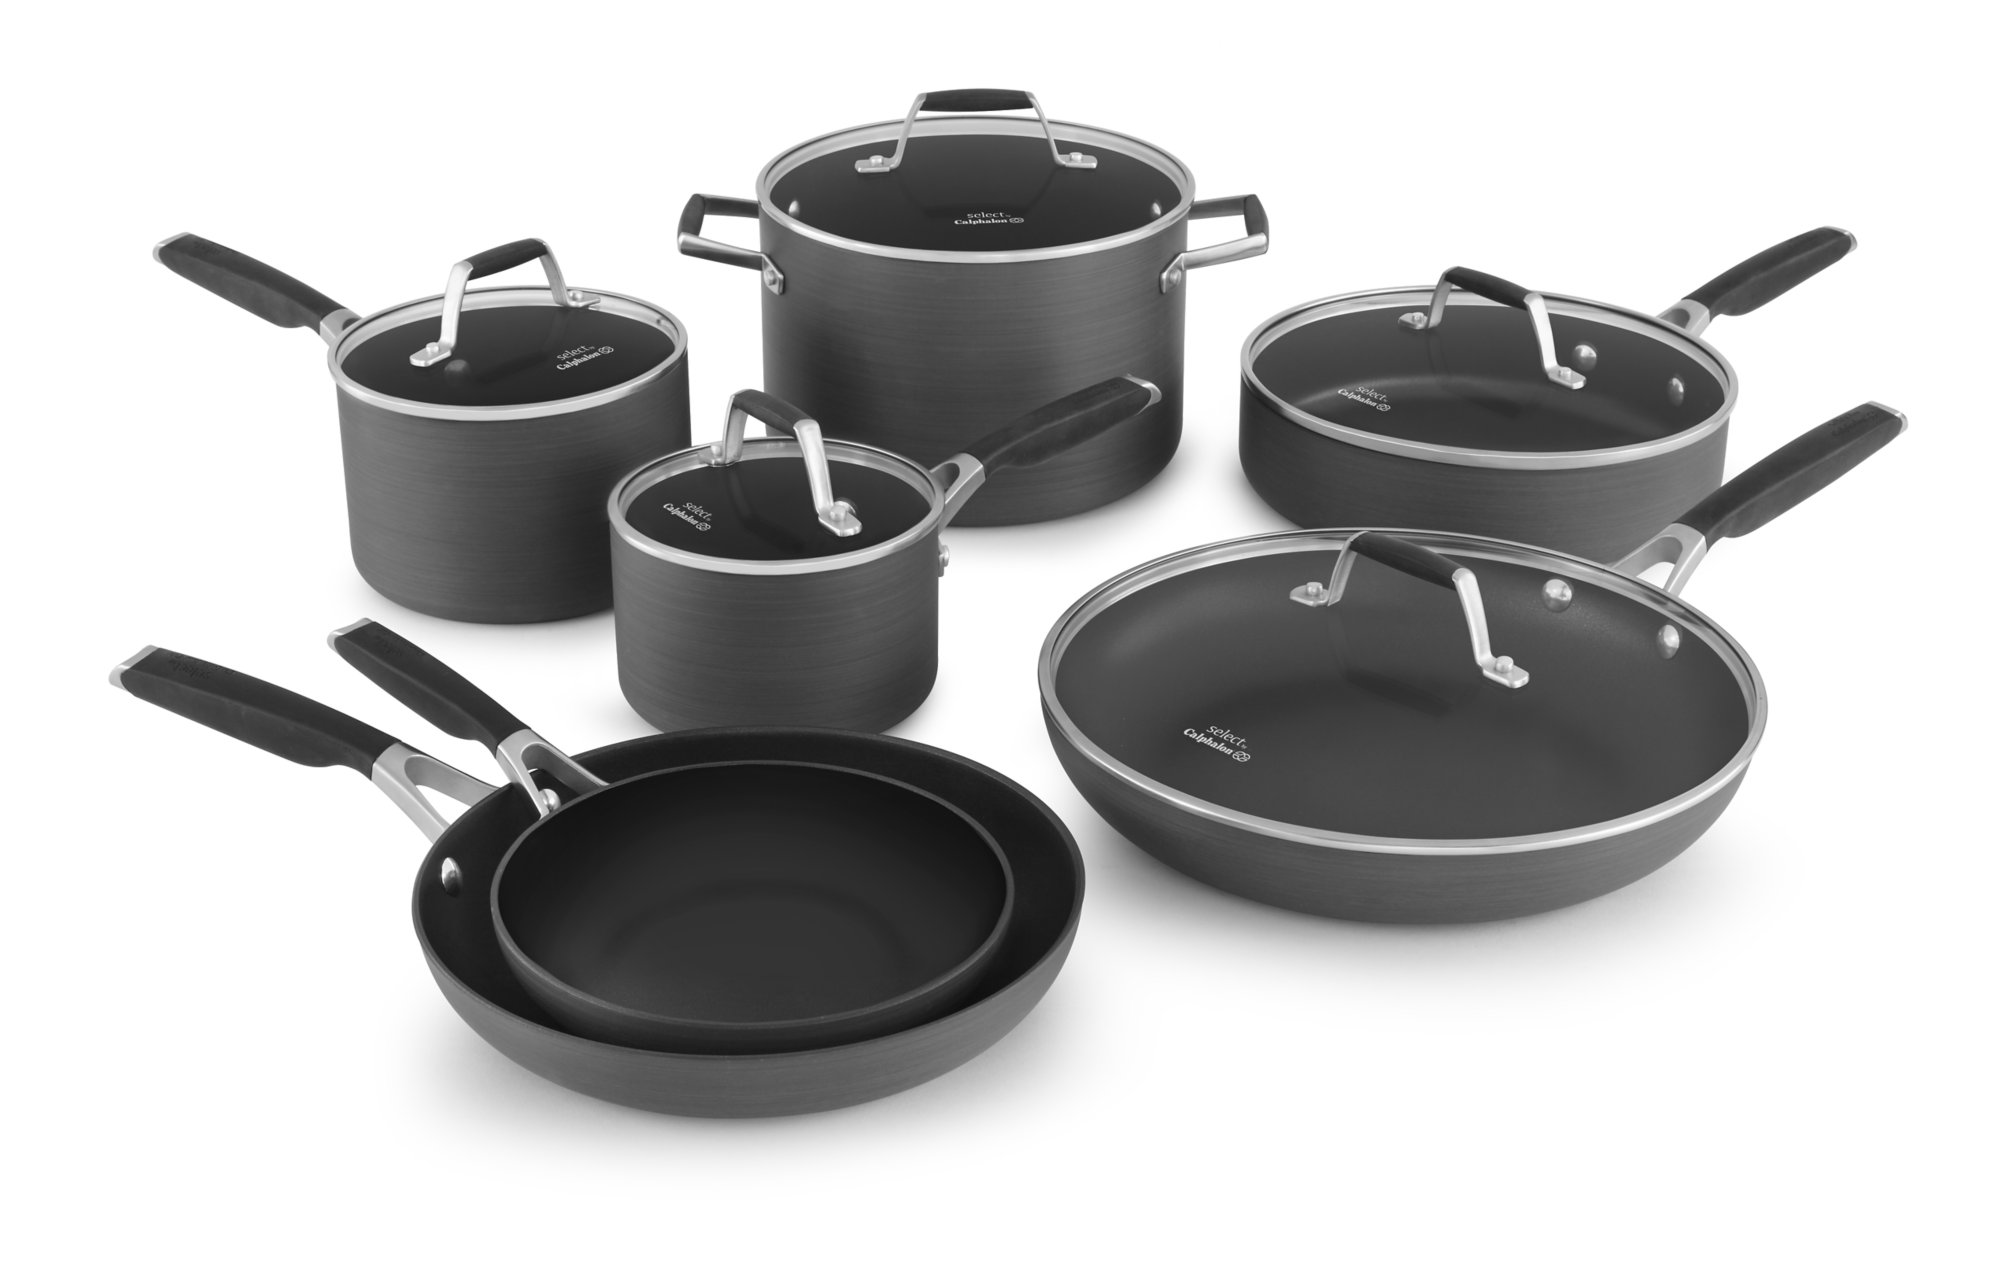 Select by Calphalon Hard-Anodized Nonstick 12-piece Cookware Set